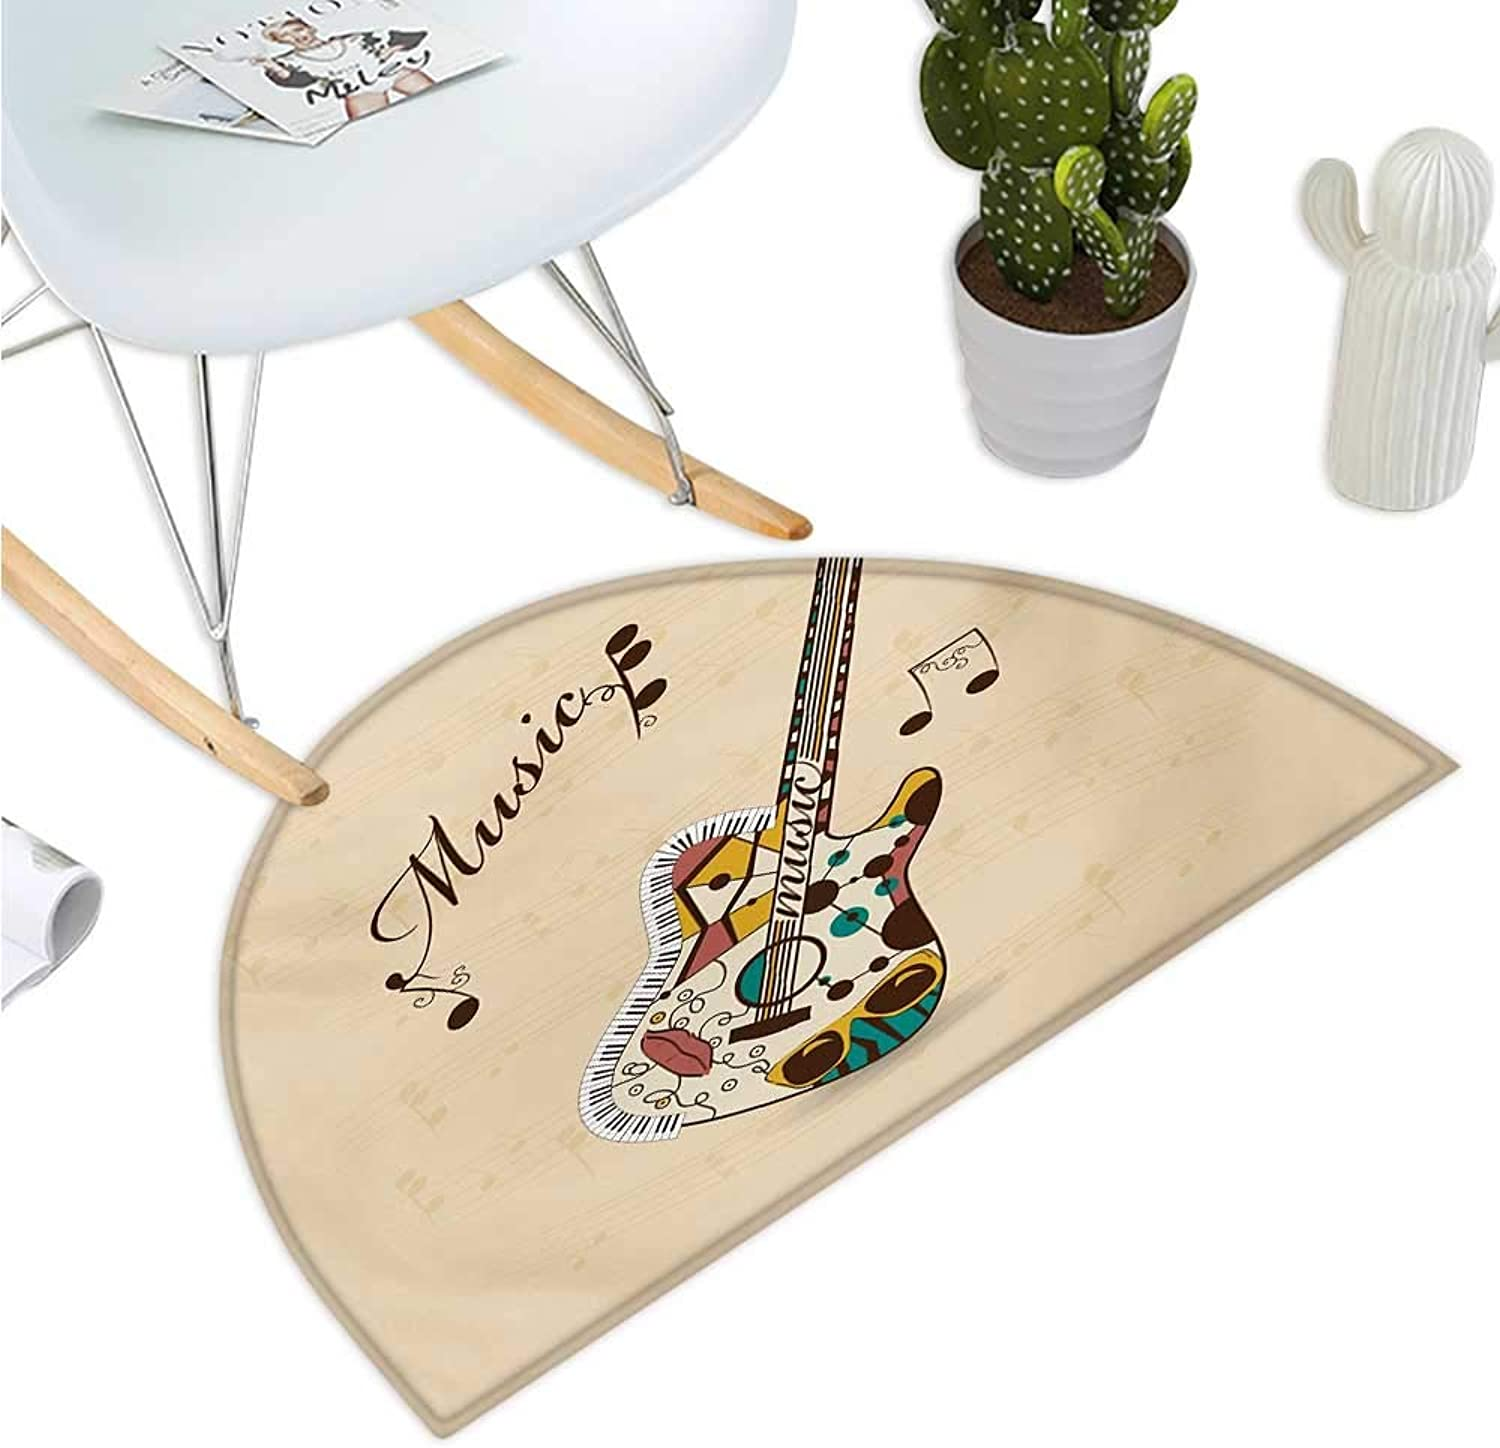 Guitar Semicircle Doormat Abstract Funky Guitar Instrument Melody Musical Notes and Hand Writing Halfmoon doormats H 43.3  xD 64.9  Sand Brown Multicolor